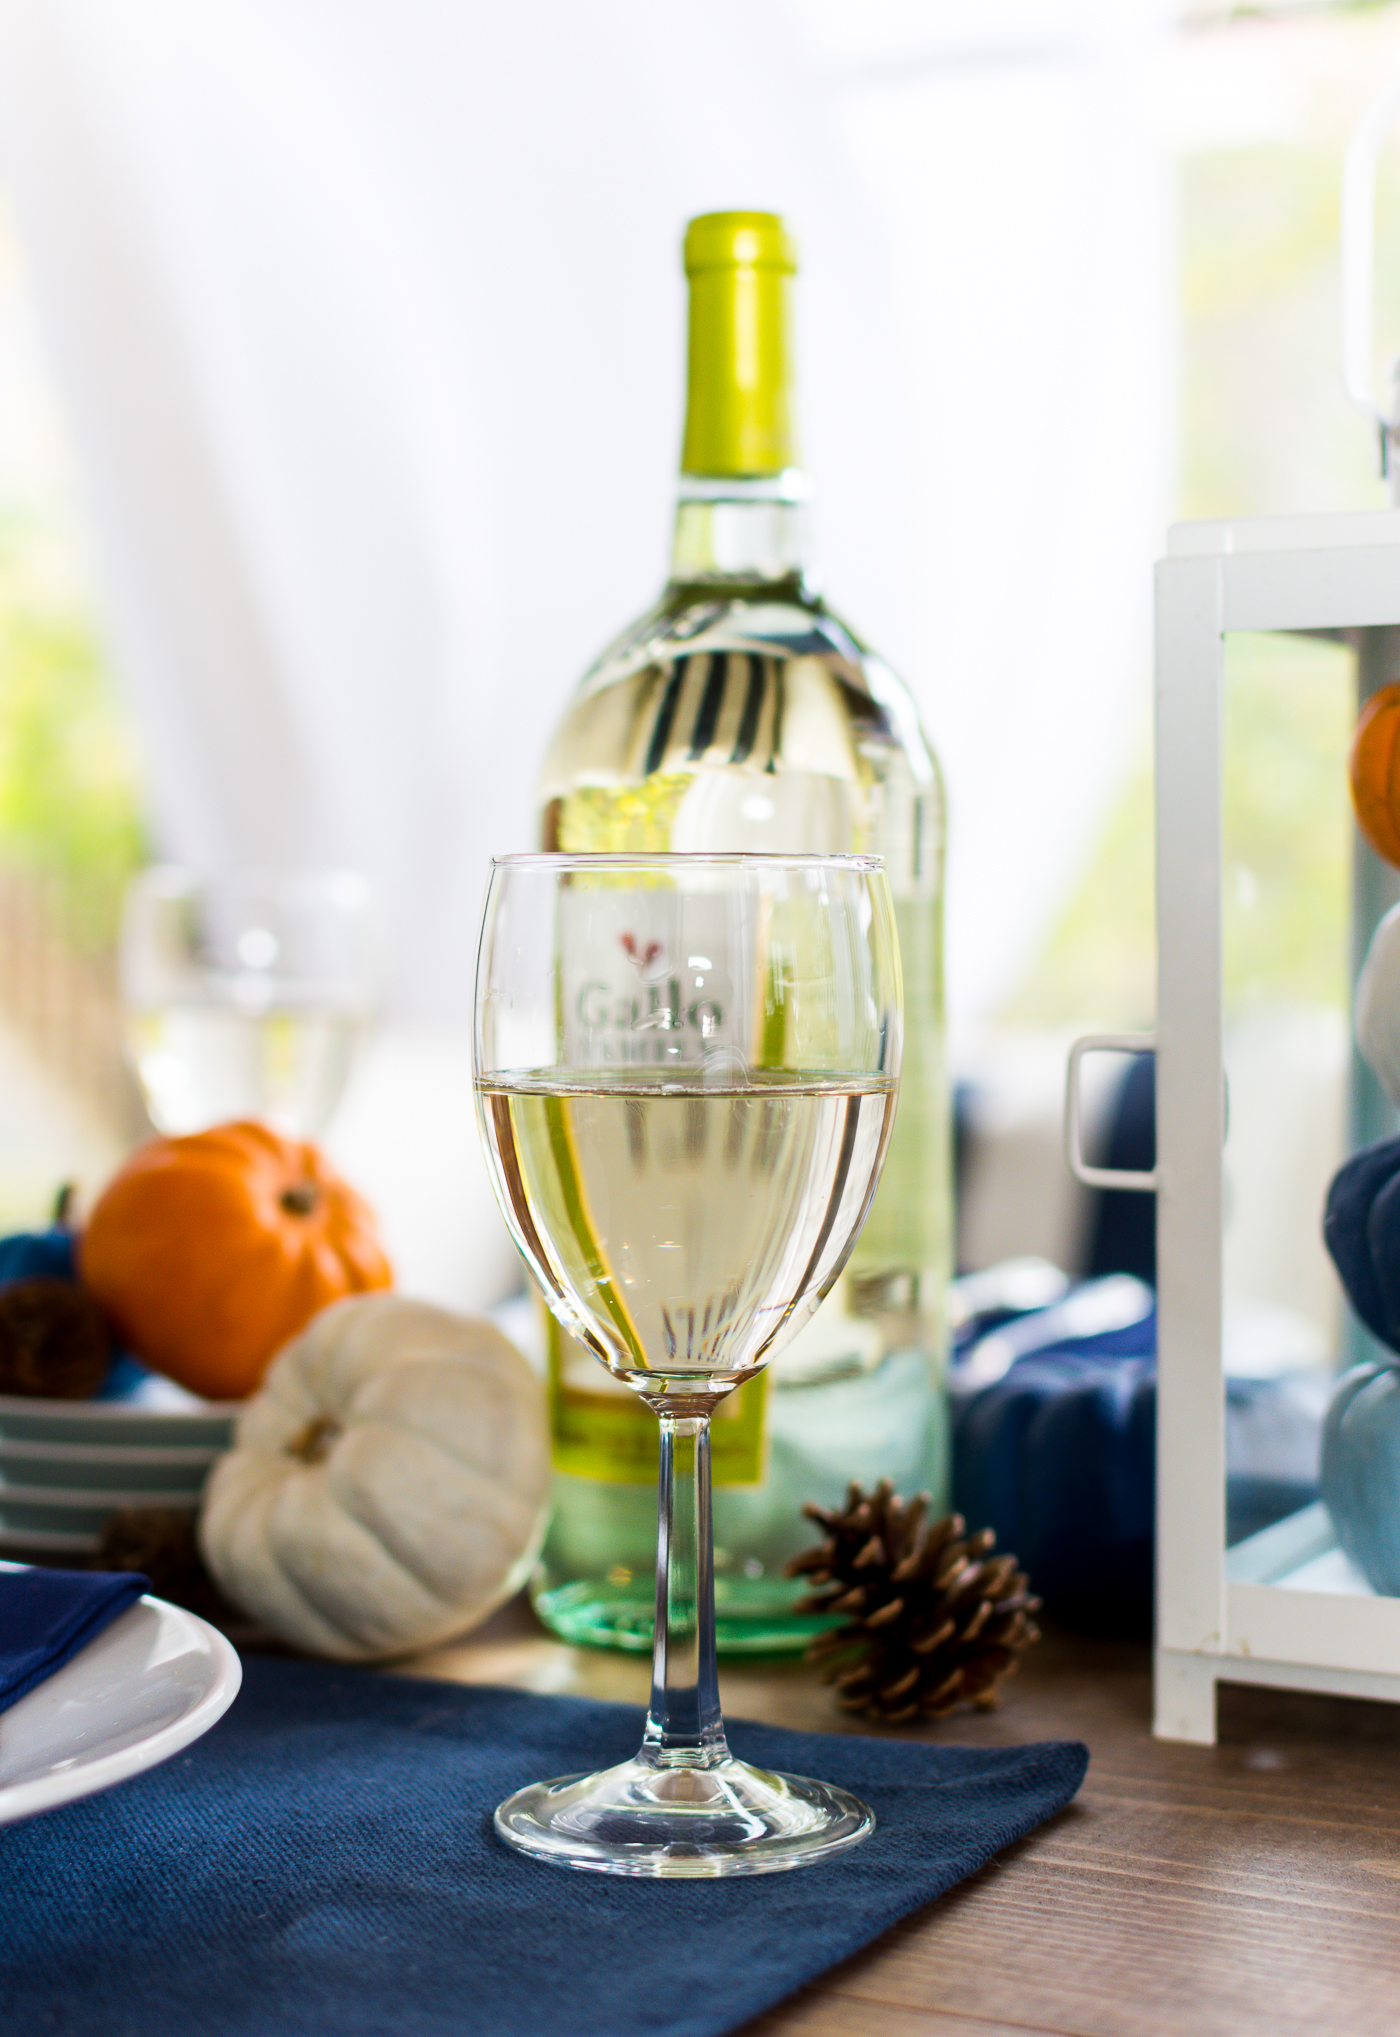 thanksgiving-table-setting-idea-navy-blue-white-orange-with-gallo-wine-pinot-grigio-itallstartedwithpait-com-10